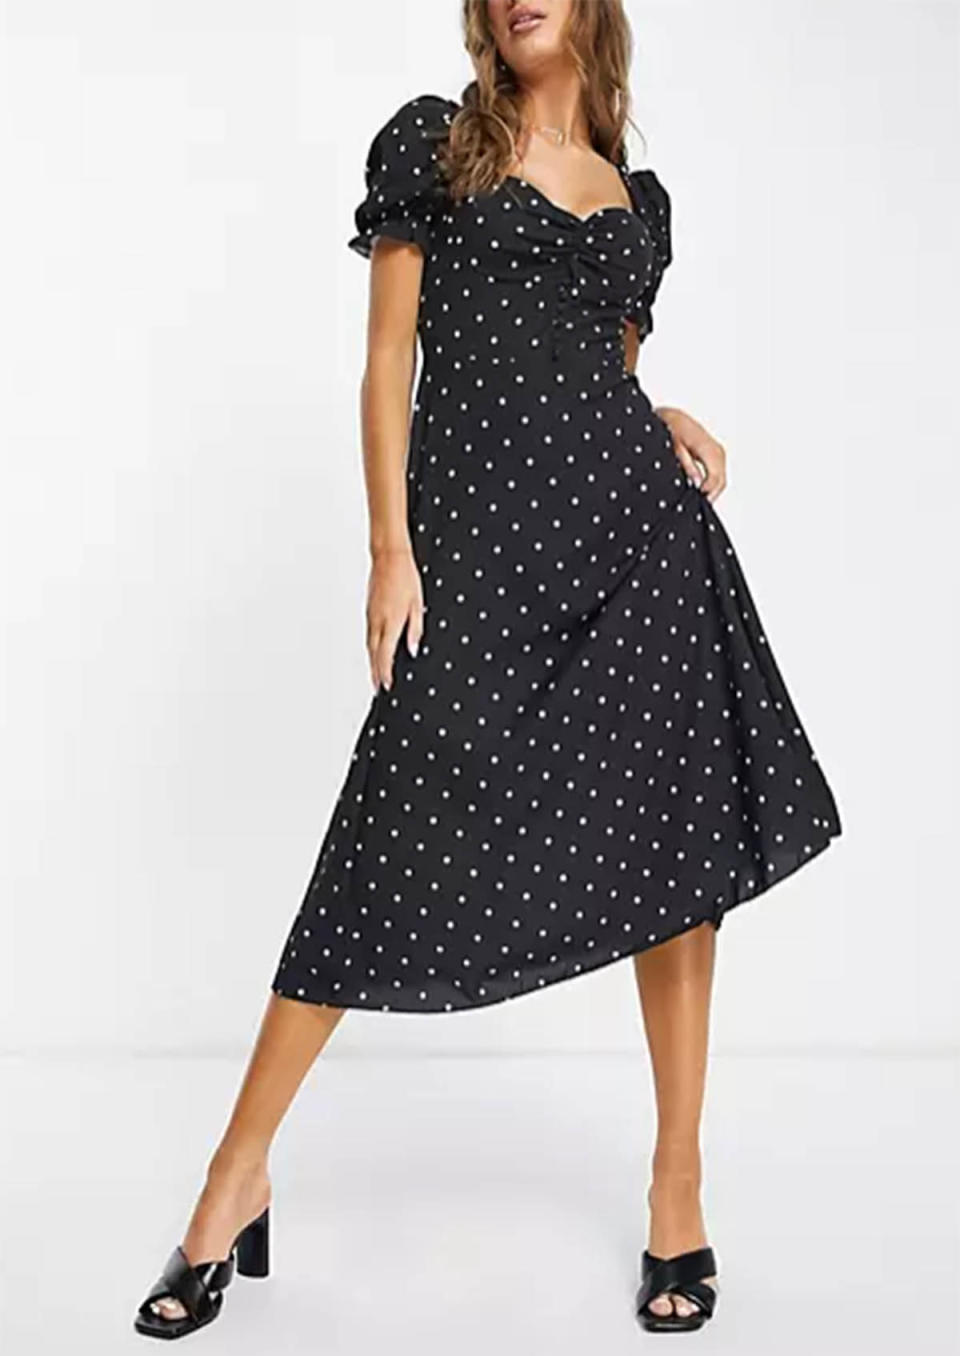 ASOS I Saw It First polka dot puff sleeve button front midi dress, $44.80 (on sale)